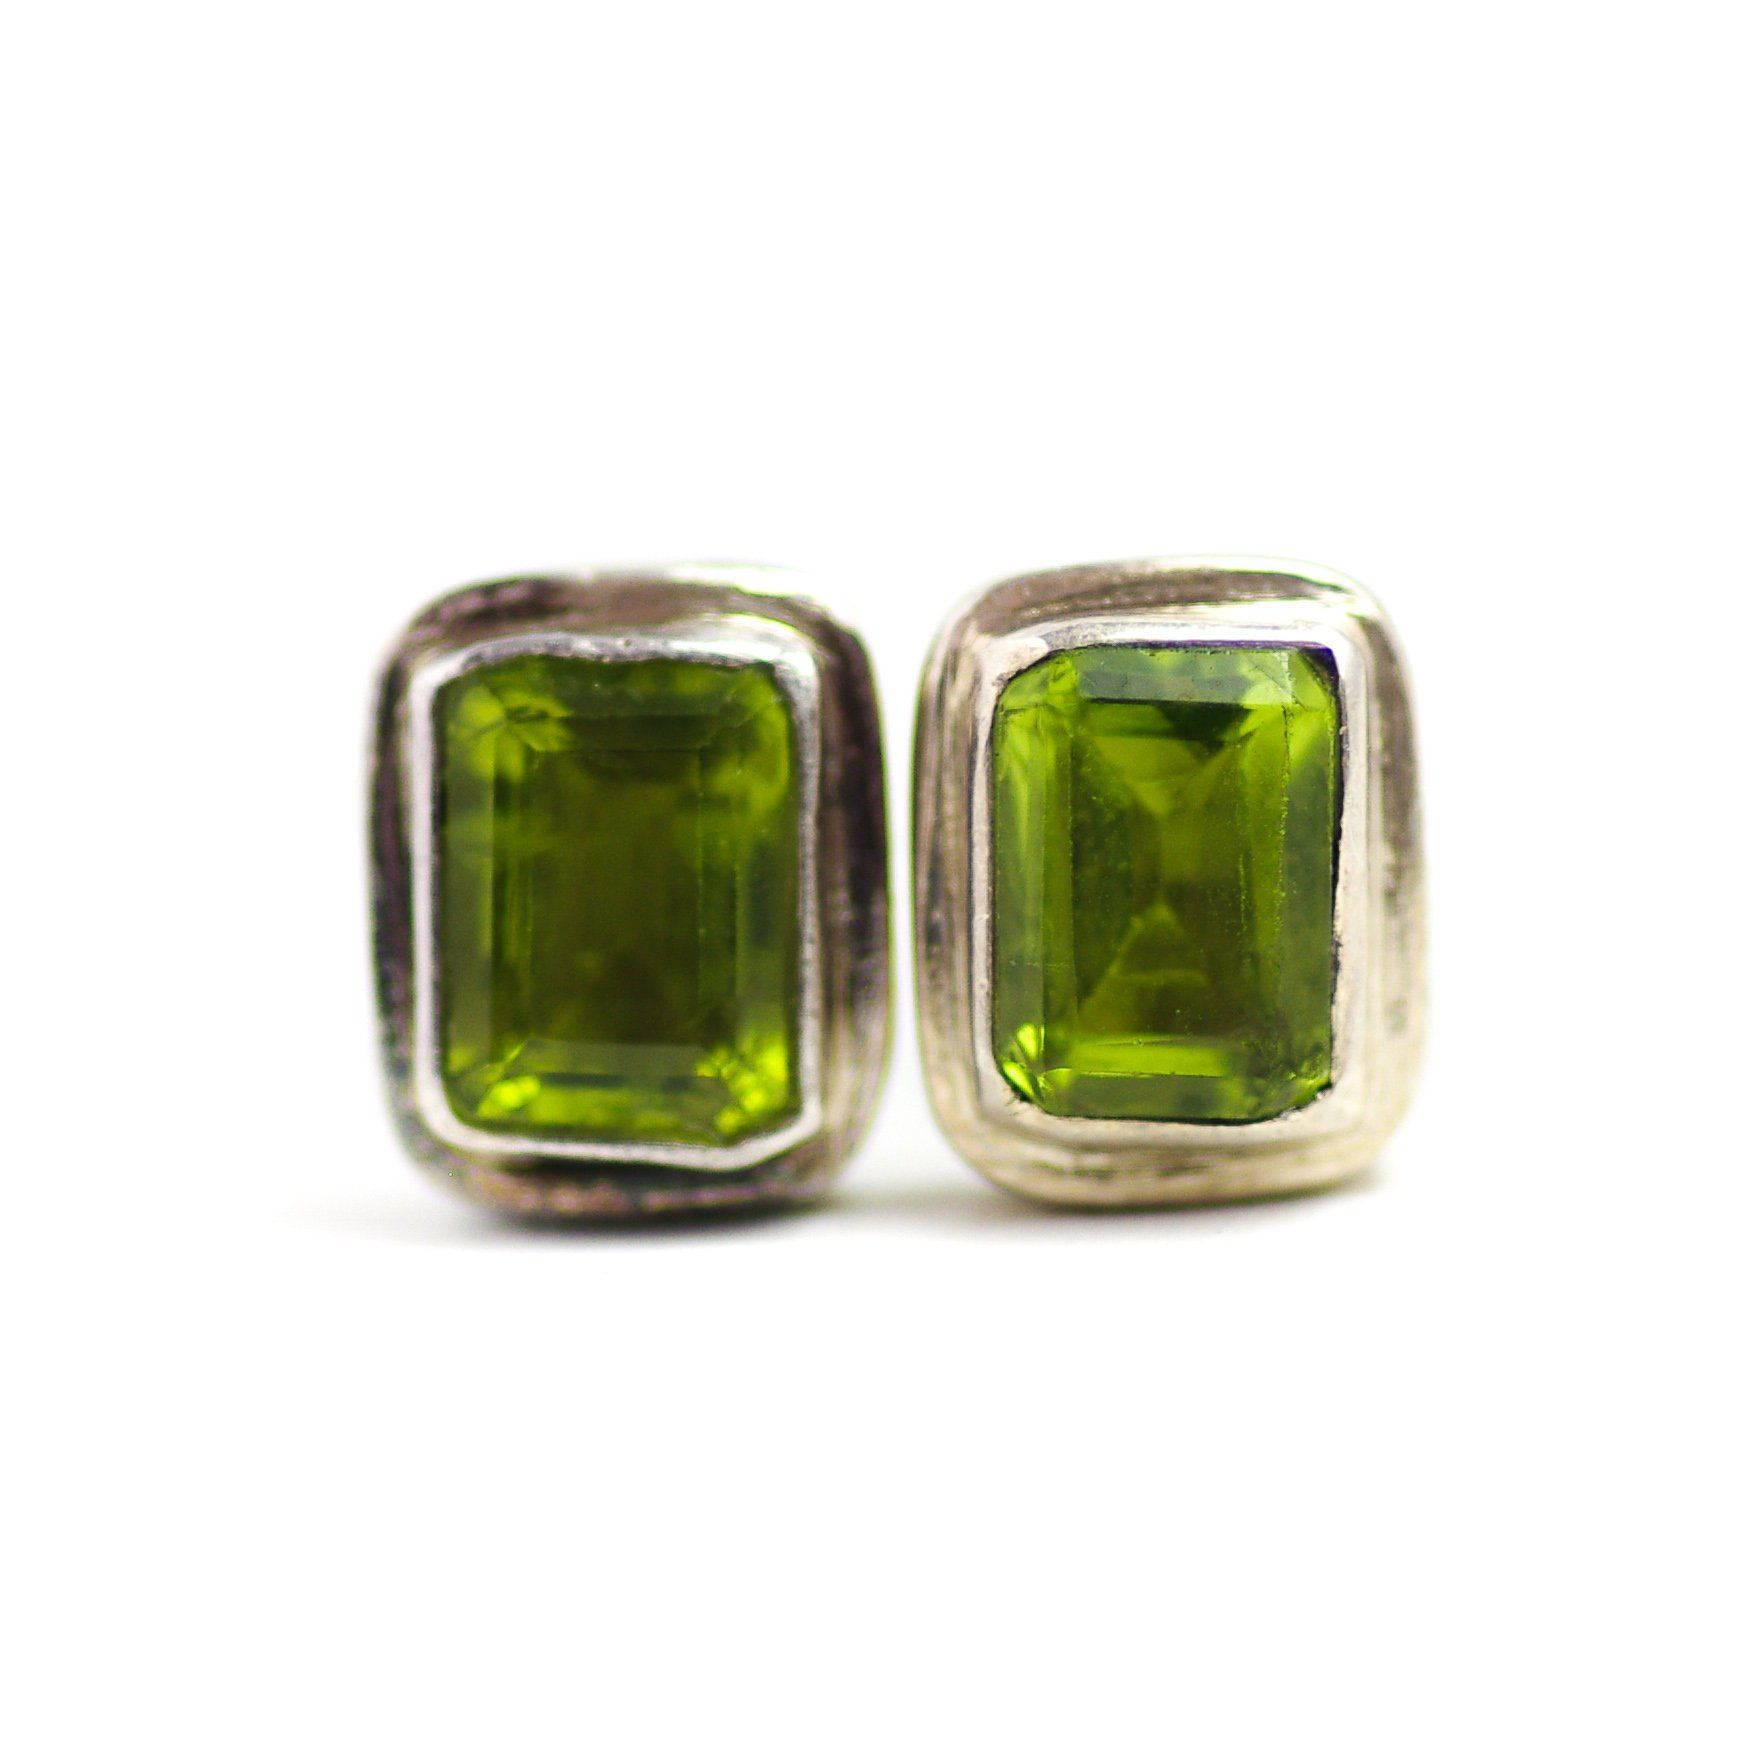 Vintage 1970s Rectangular Cut Peridot and Sterling Silver Large Stud Pierced Earrings